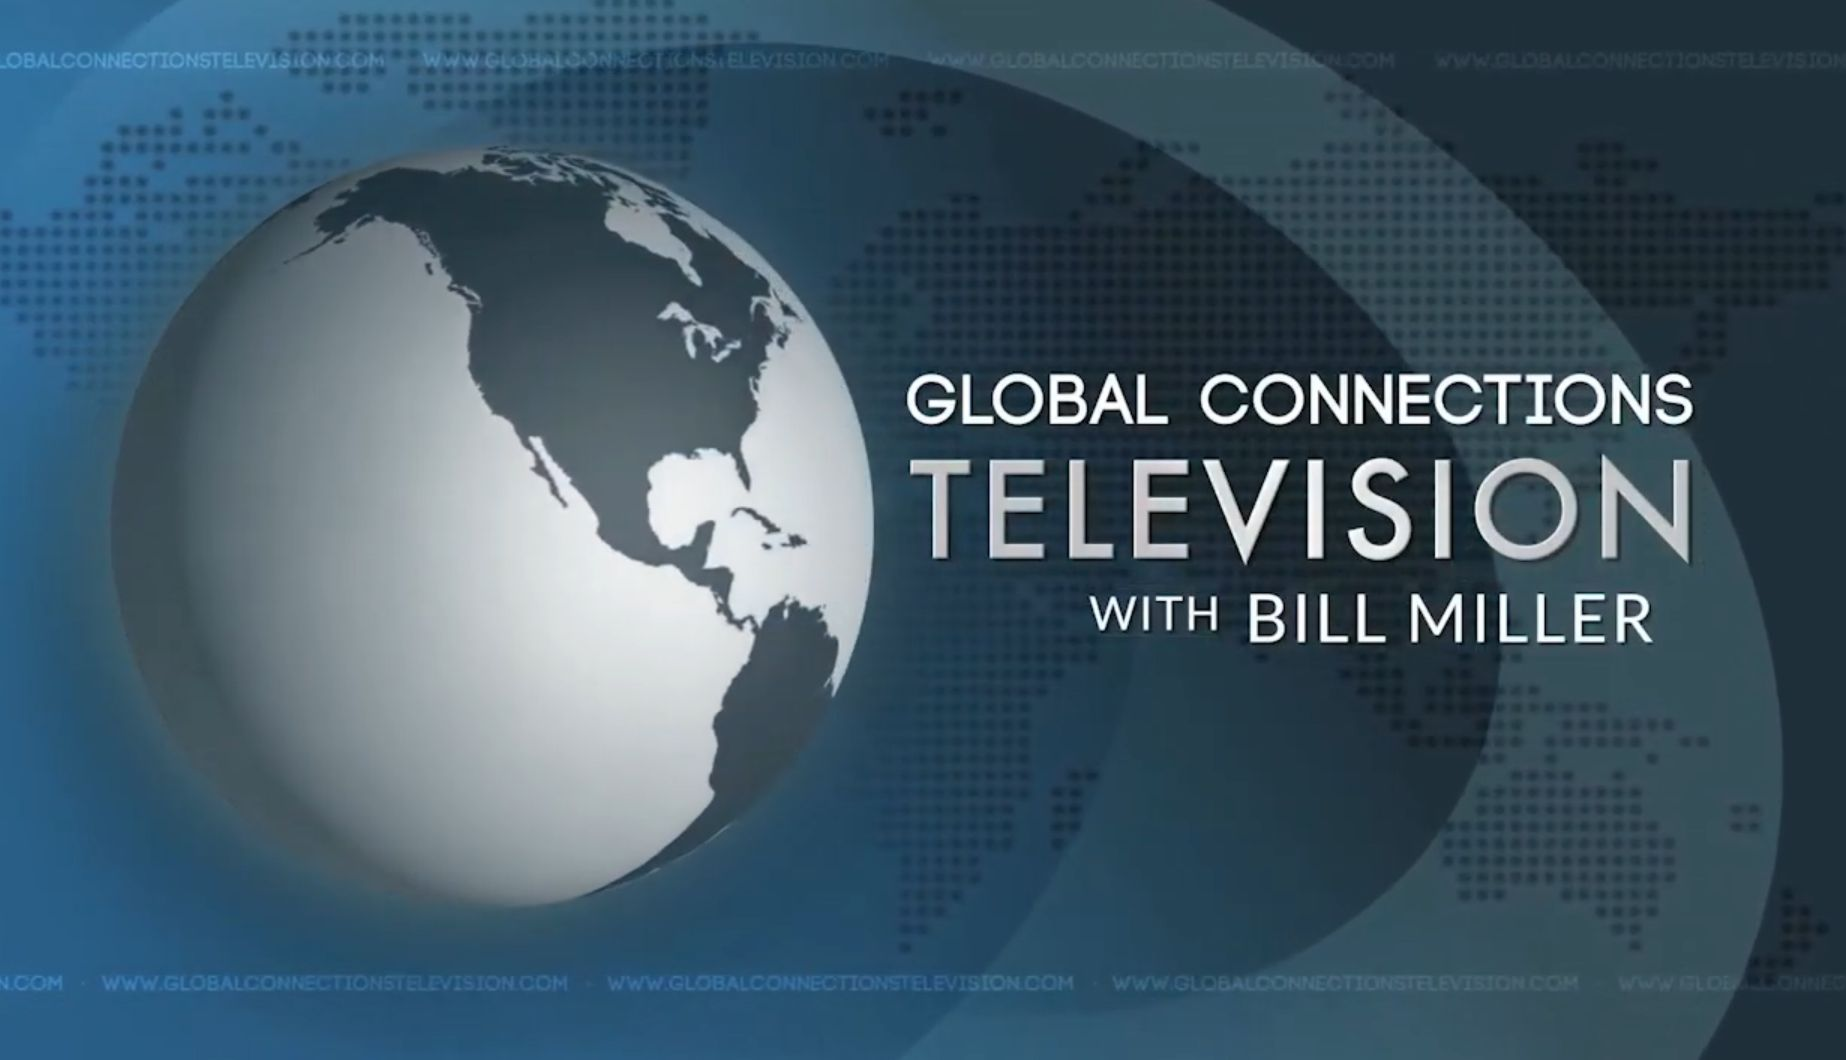 Global Connections Television (GCTV) has a talk show. GCTV is featuring its guests, from leaders at the UN to the private sector to academics to non-governmental organizations. International relations specialist Bill Miller in the GCTV global connections program discusses world events with experts from various fields every week.